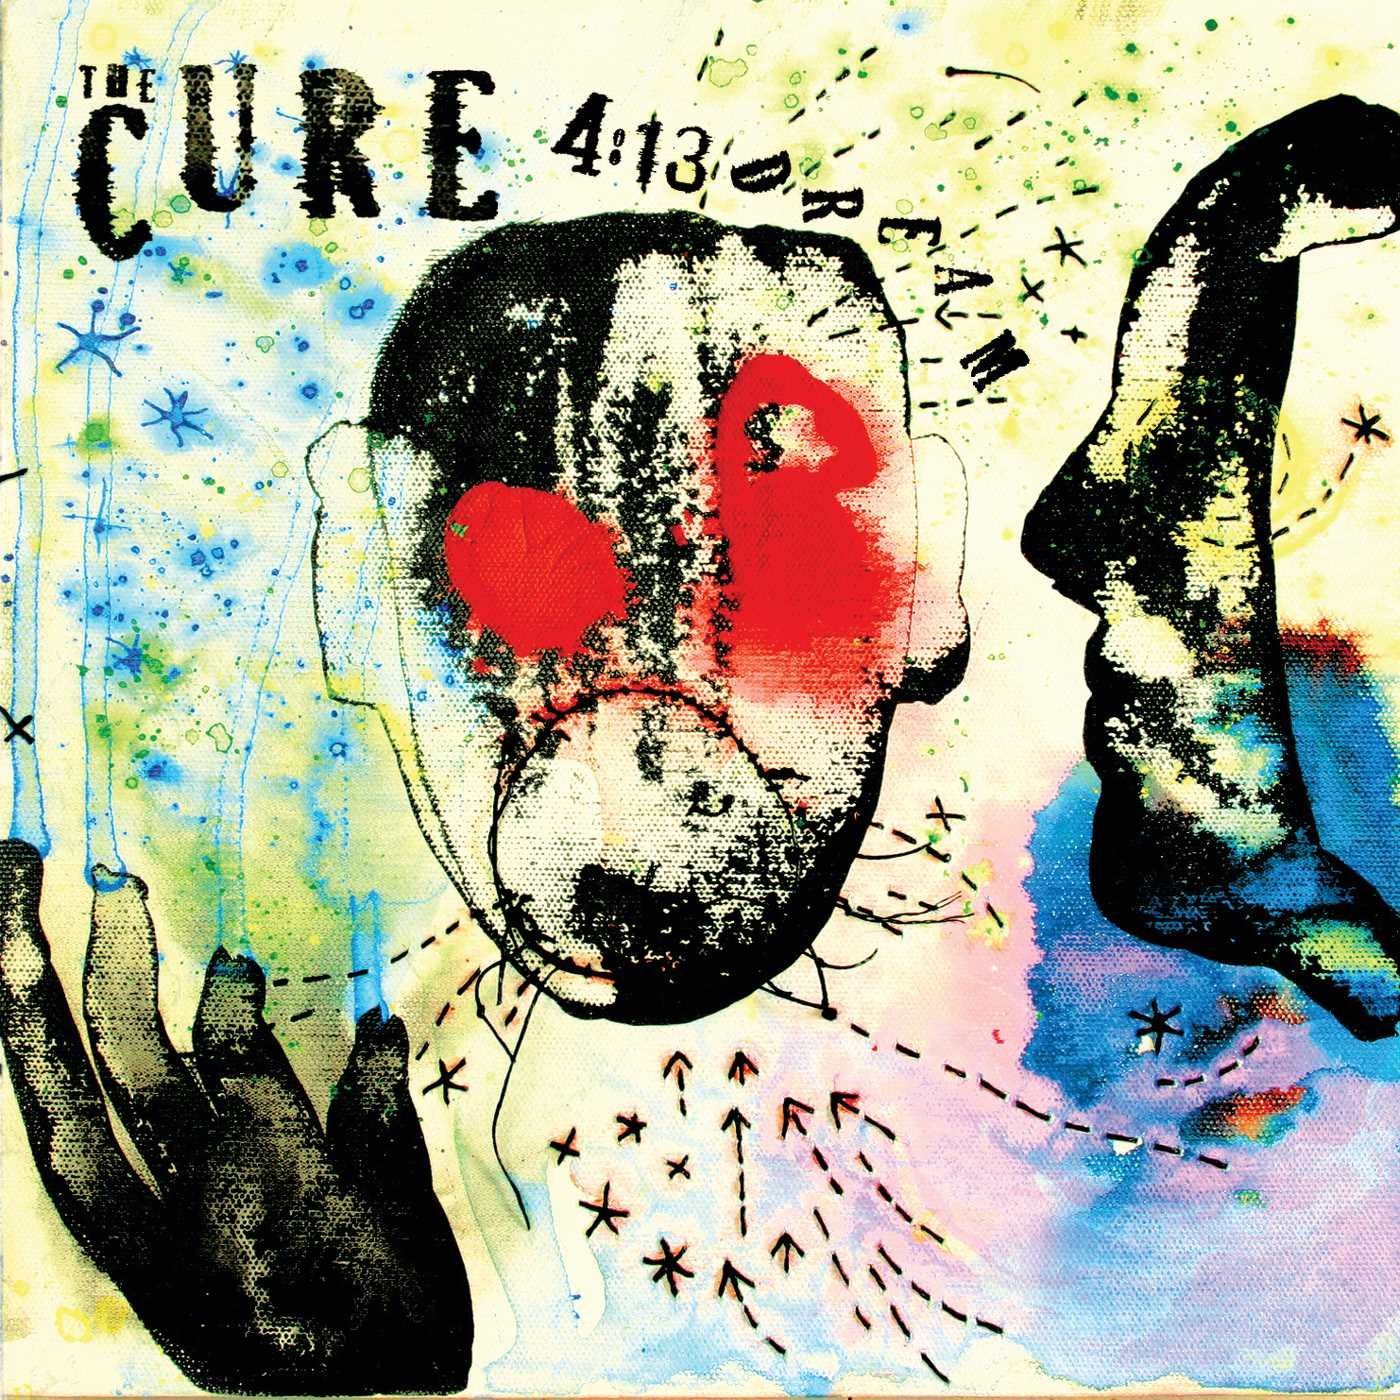 The Cure, 4:13 Dream